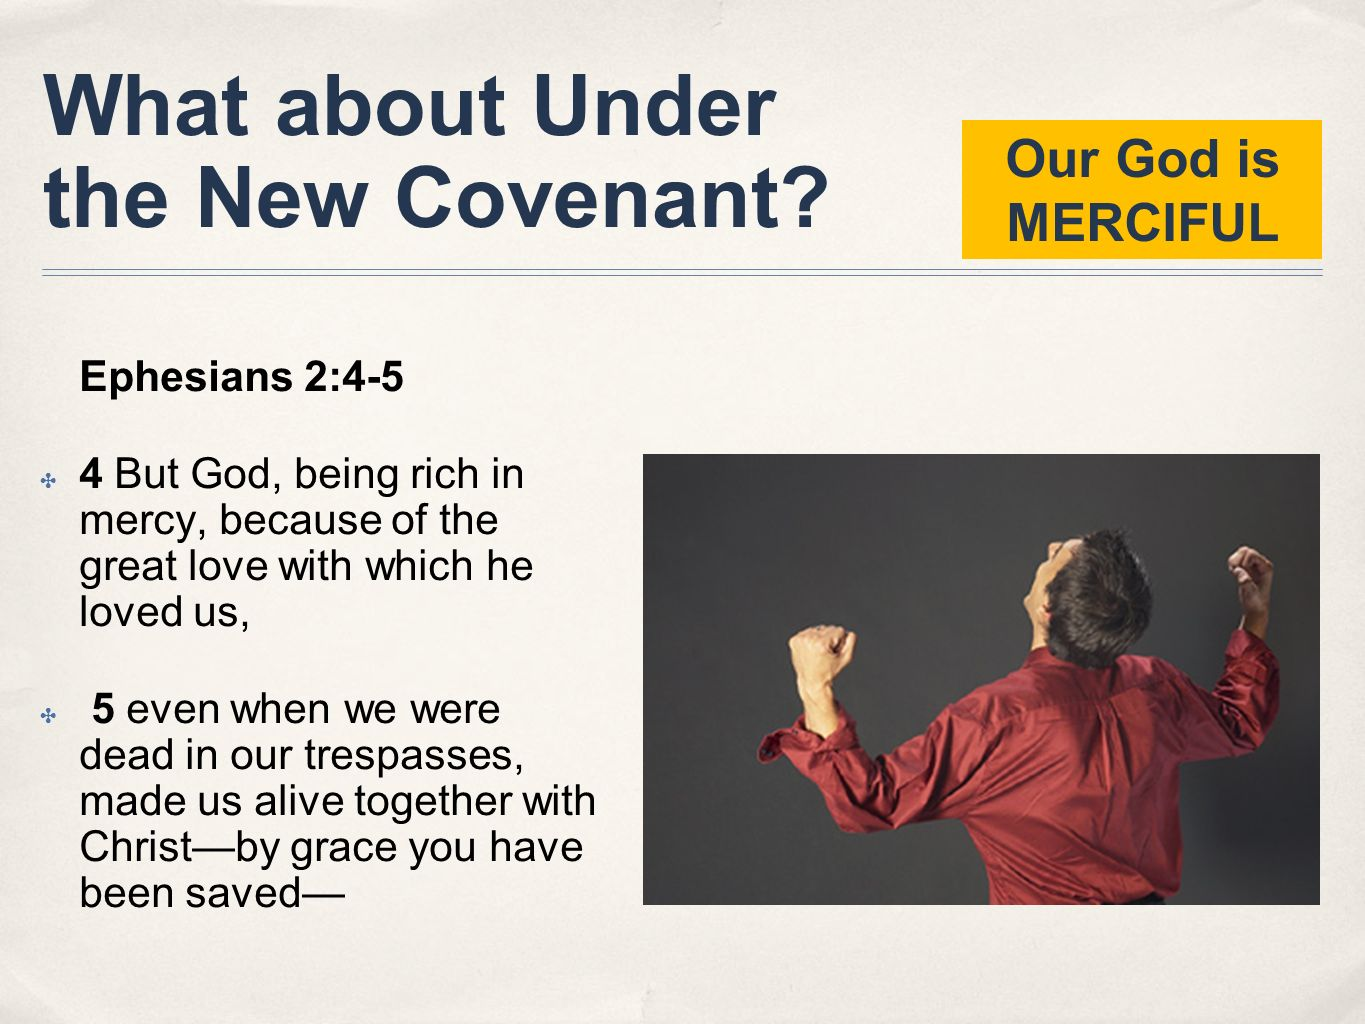 What about Under the New Covenant